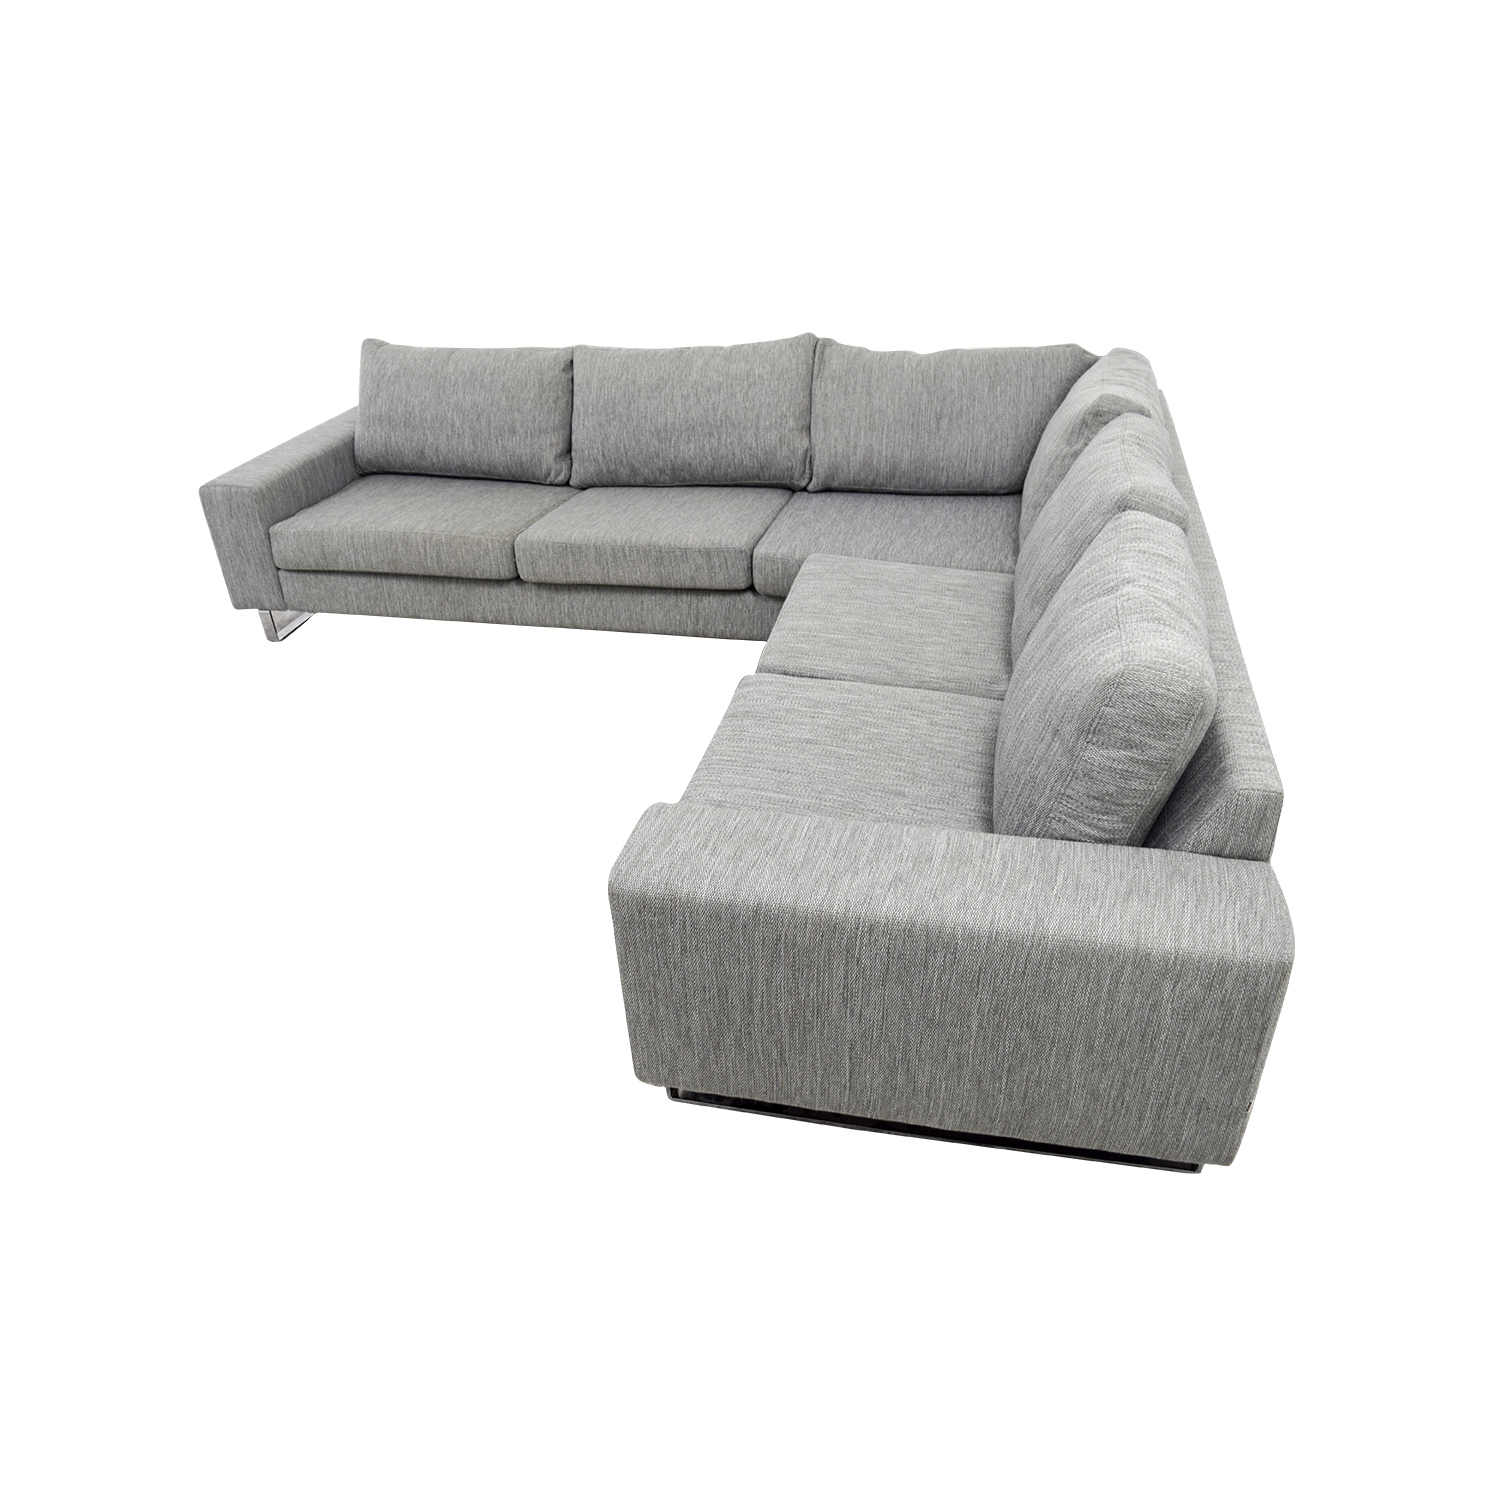 Stupendous 45 Off Boconcept Boconcept Grey Corner Sectional Sofas Machost Co Dining Chair Design Ideas Machostcouk